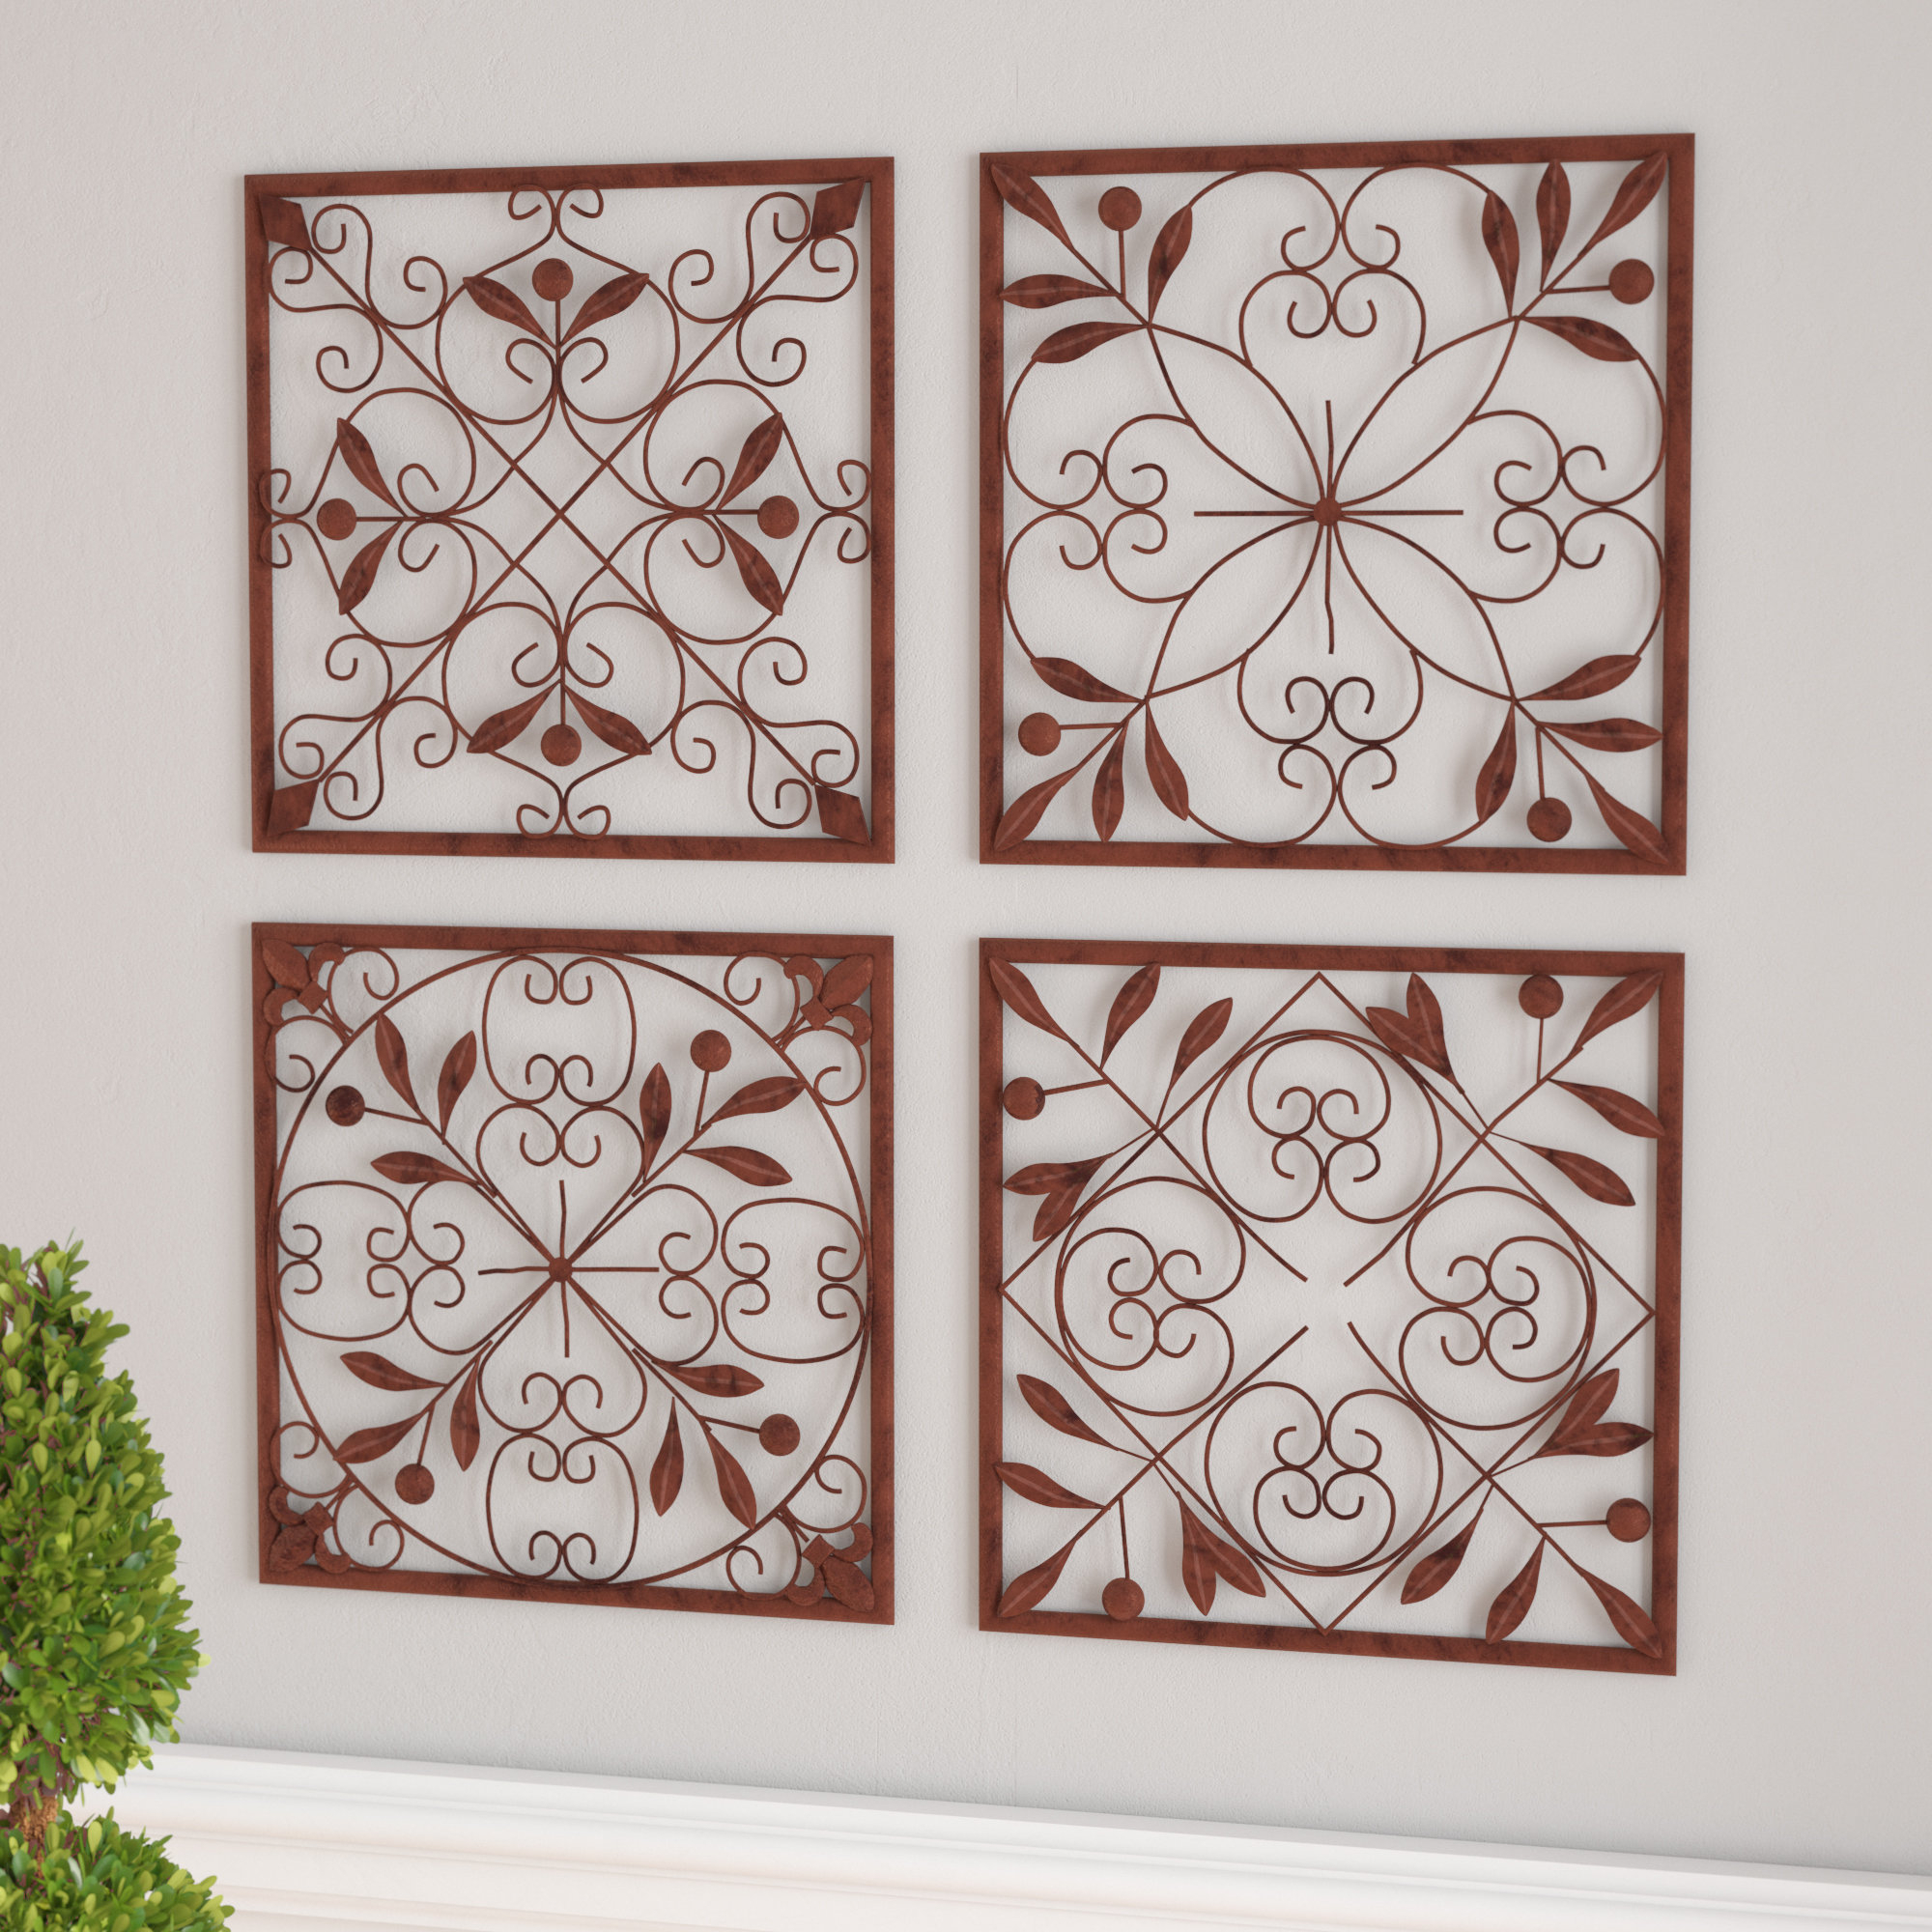 Charlton Home 4 Piece Wall Décor Set & Reviews   Wayfair For Wall Decor By Charlton Home (View 11 of 30)